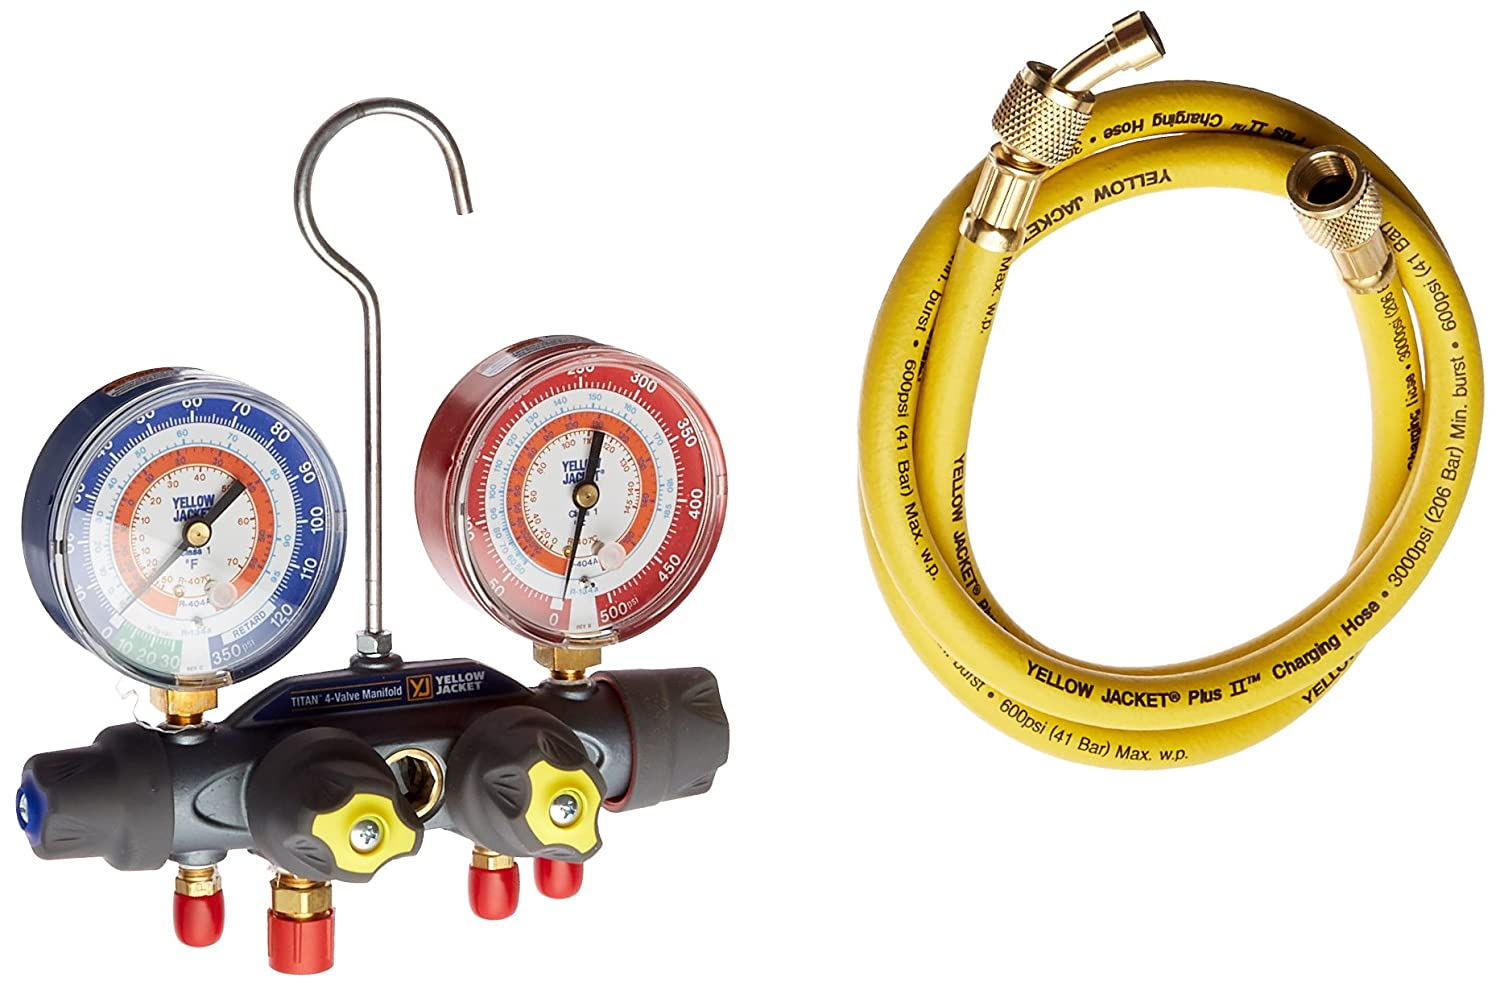 Yellow Jacket 49935 Titan 4-Valve Test and Charging Manifold degrees F, psi Scale, R-134A/404A/407C Refrigerant, Red/Blue Gauges Fotronic Corporation